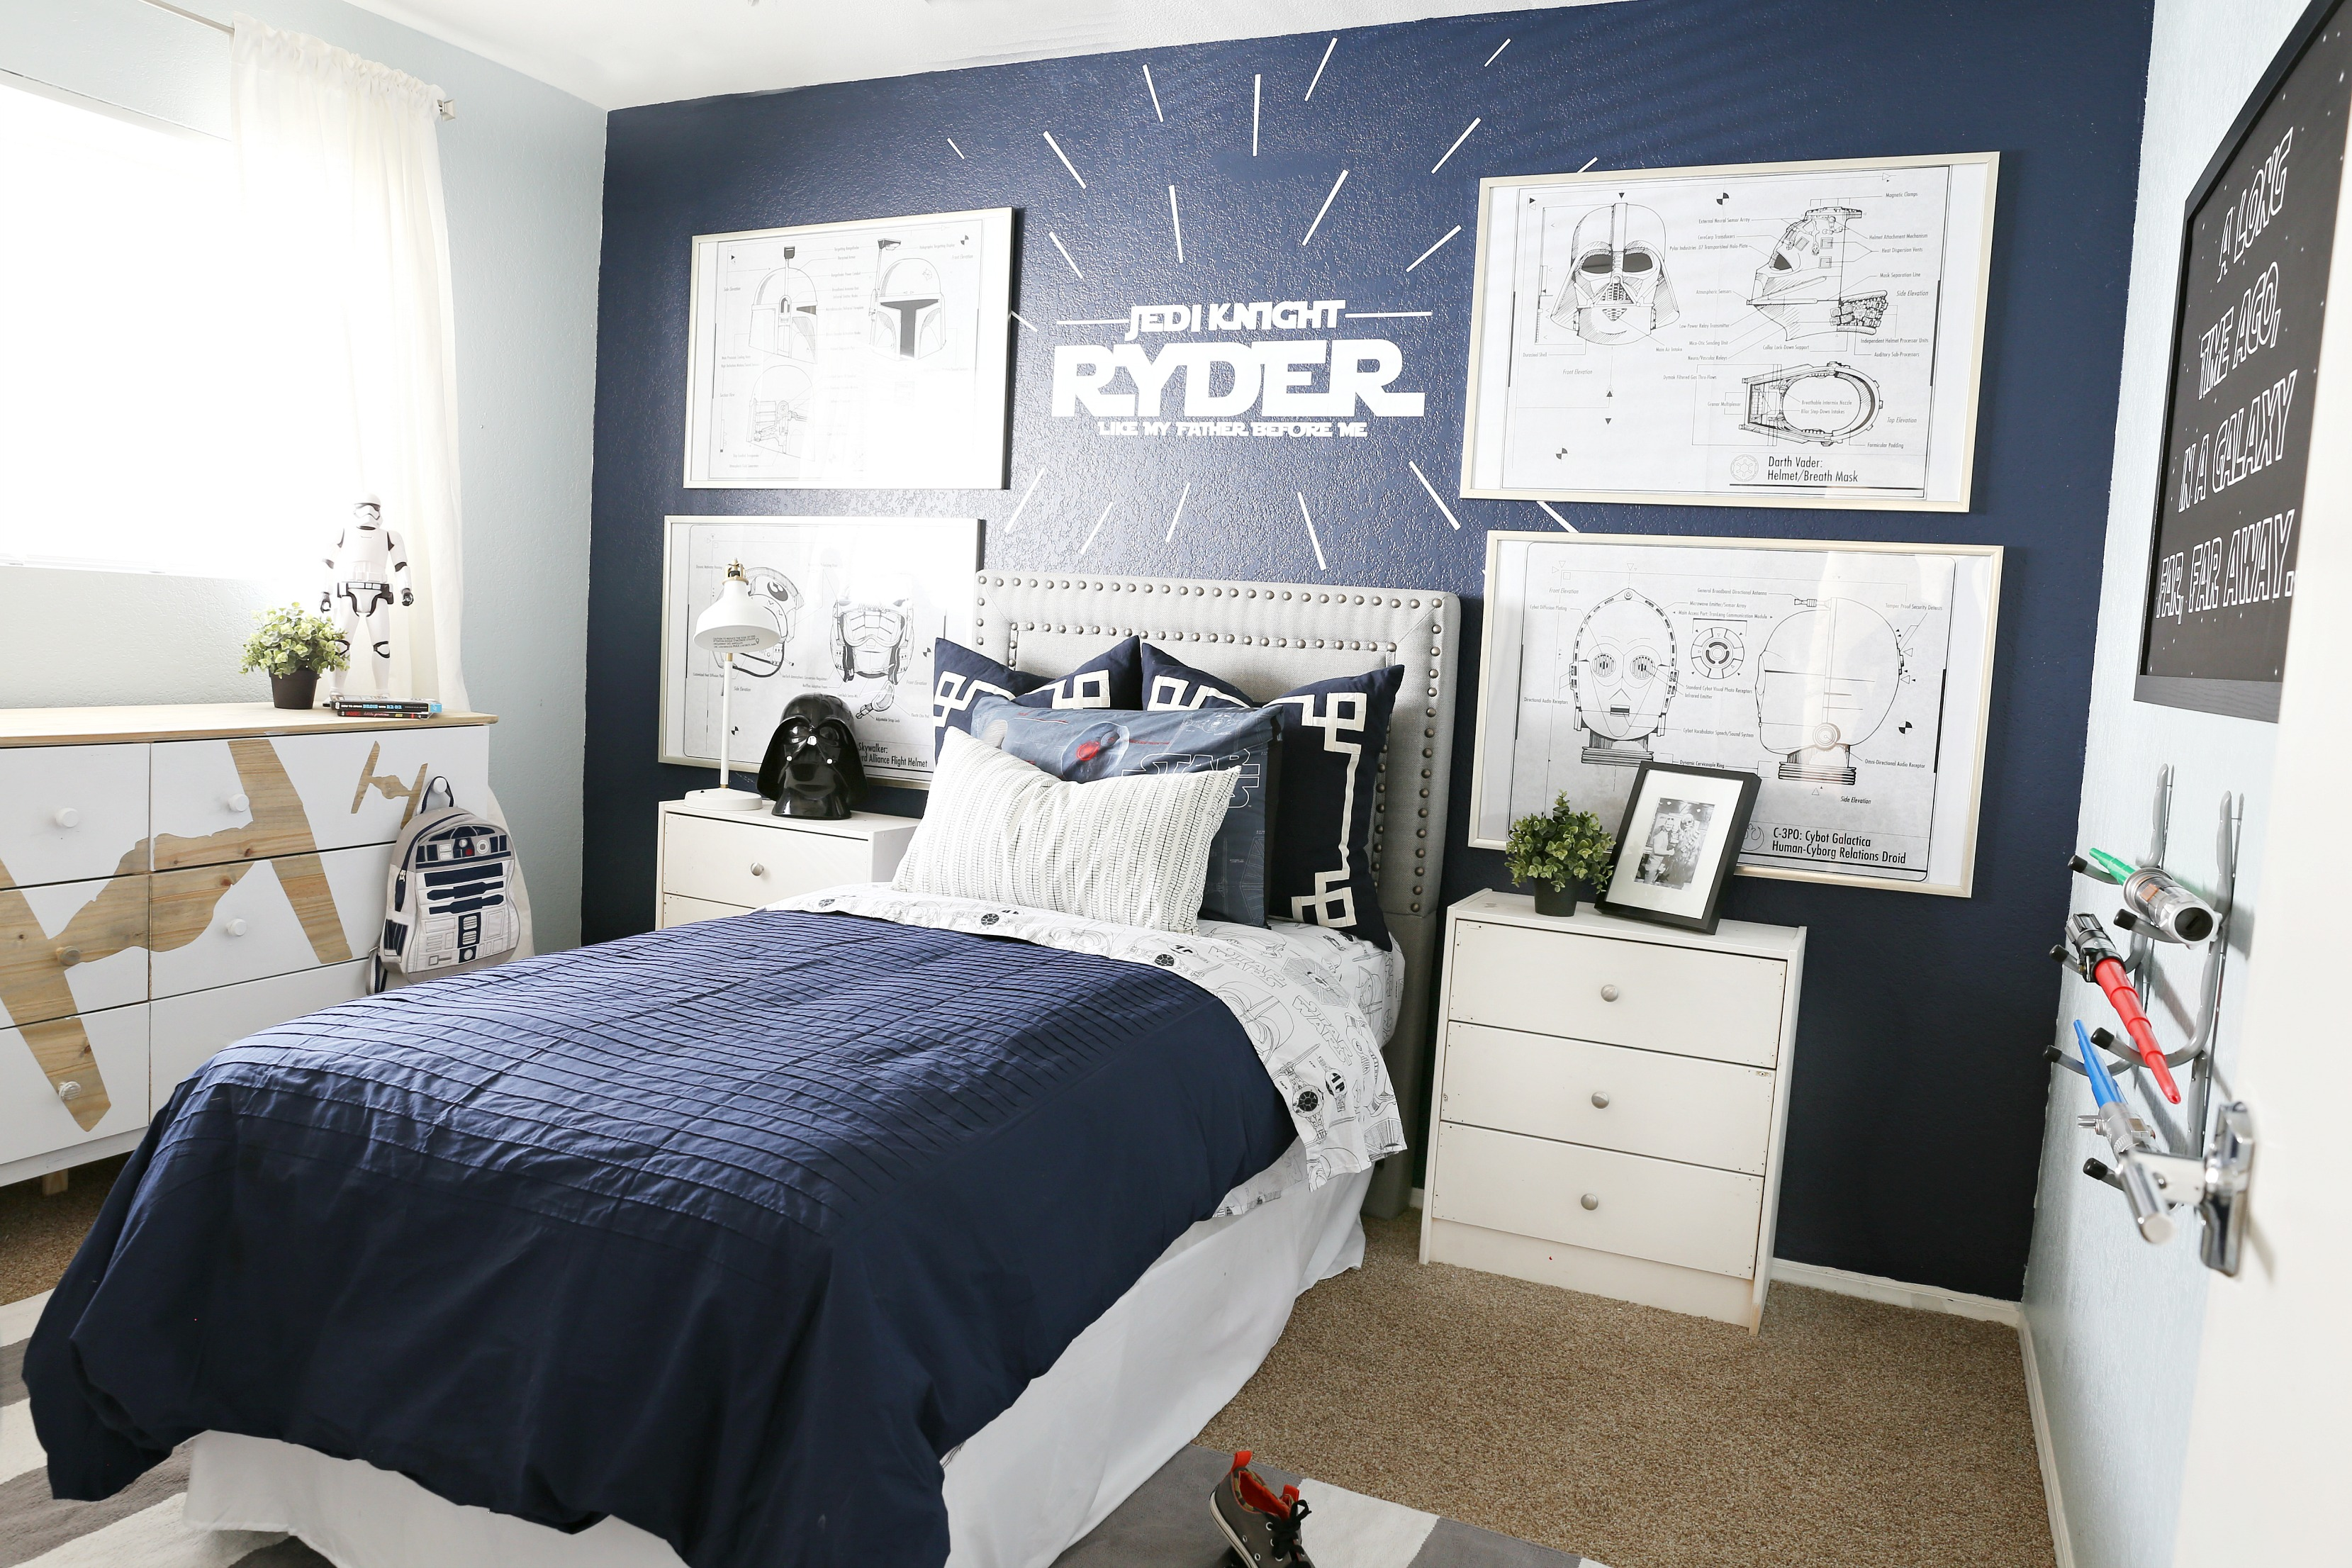 Star Wars Bedroom Ideas Themes Star Wars Kids Bedroom Classy Clutter